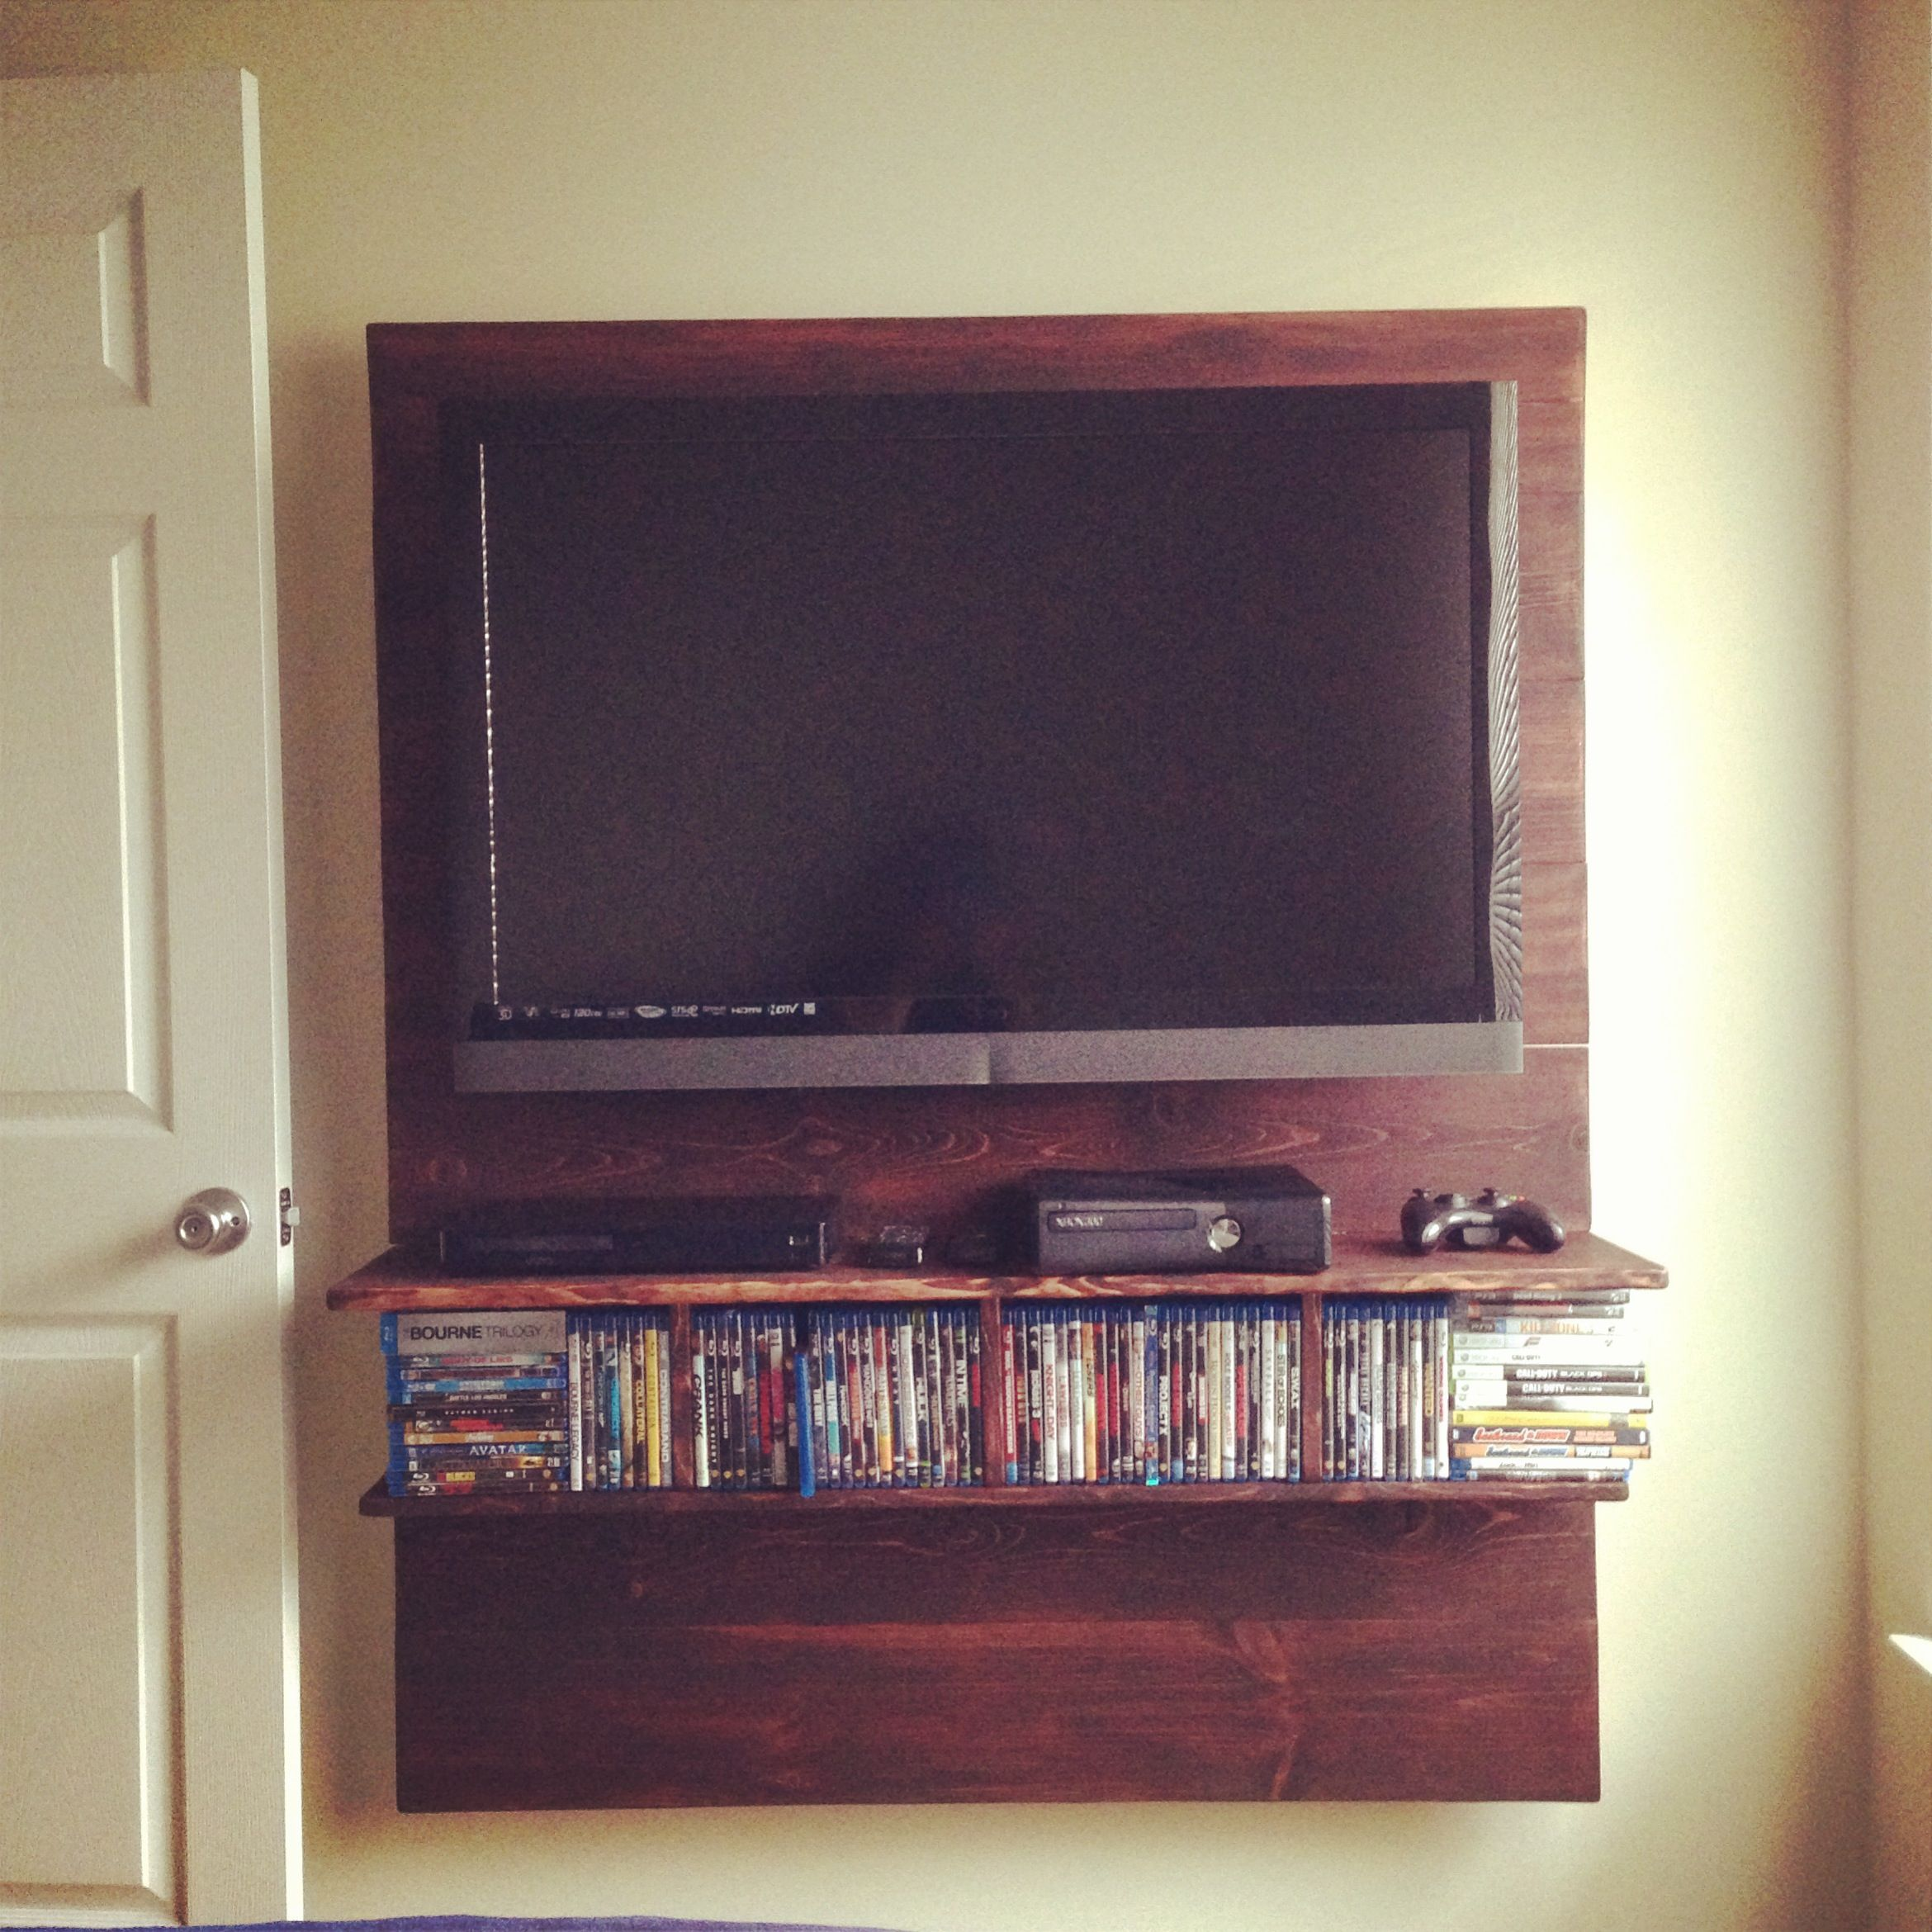 How To Cover Wires Wall Mount For The Tv To Hide The Wires Decor Ideas Pinterest